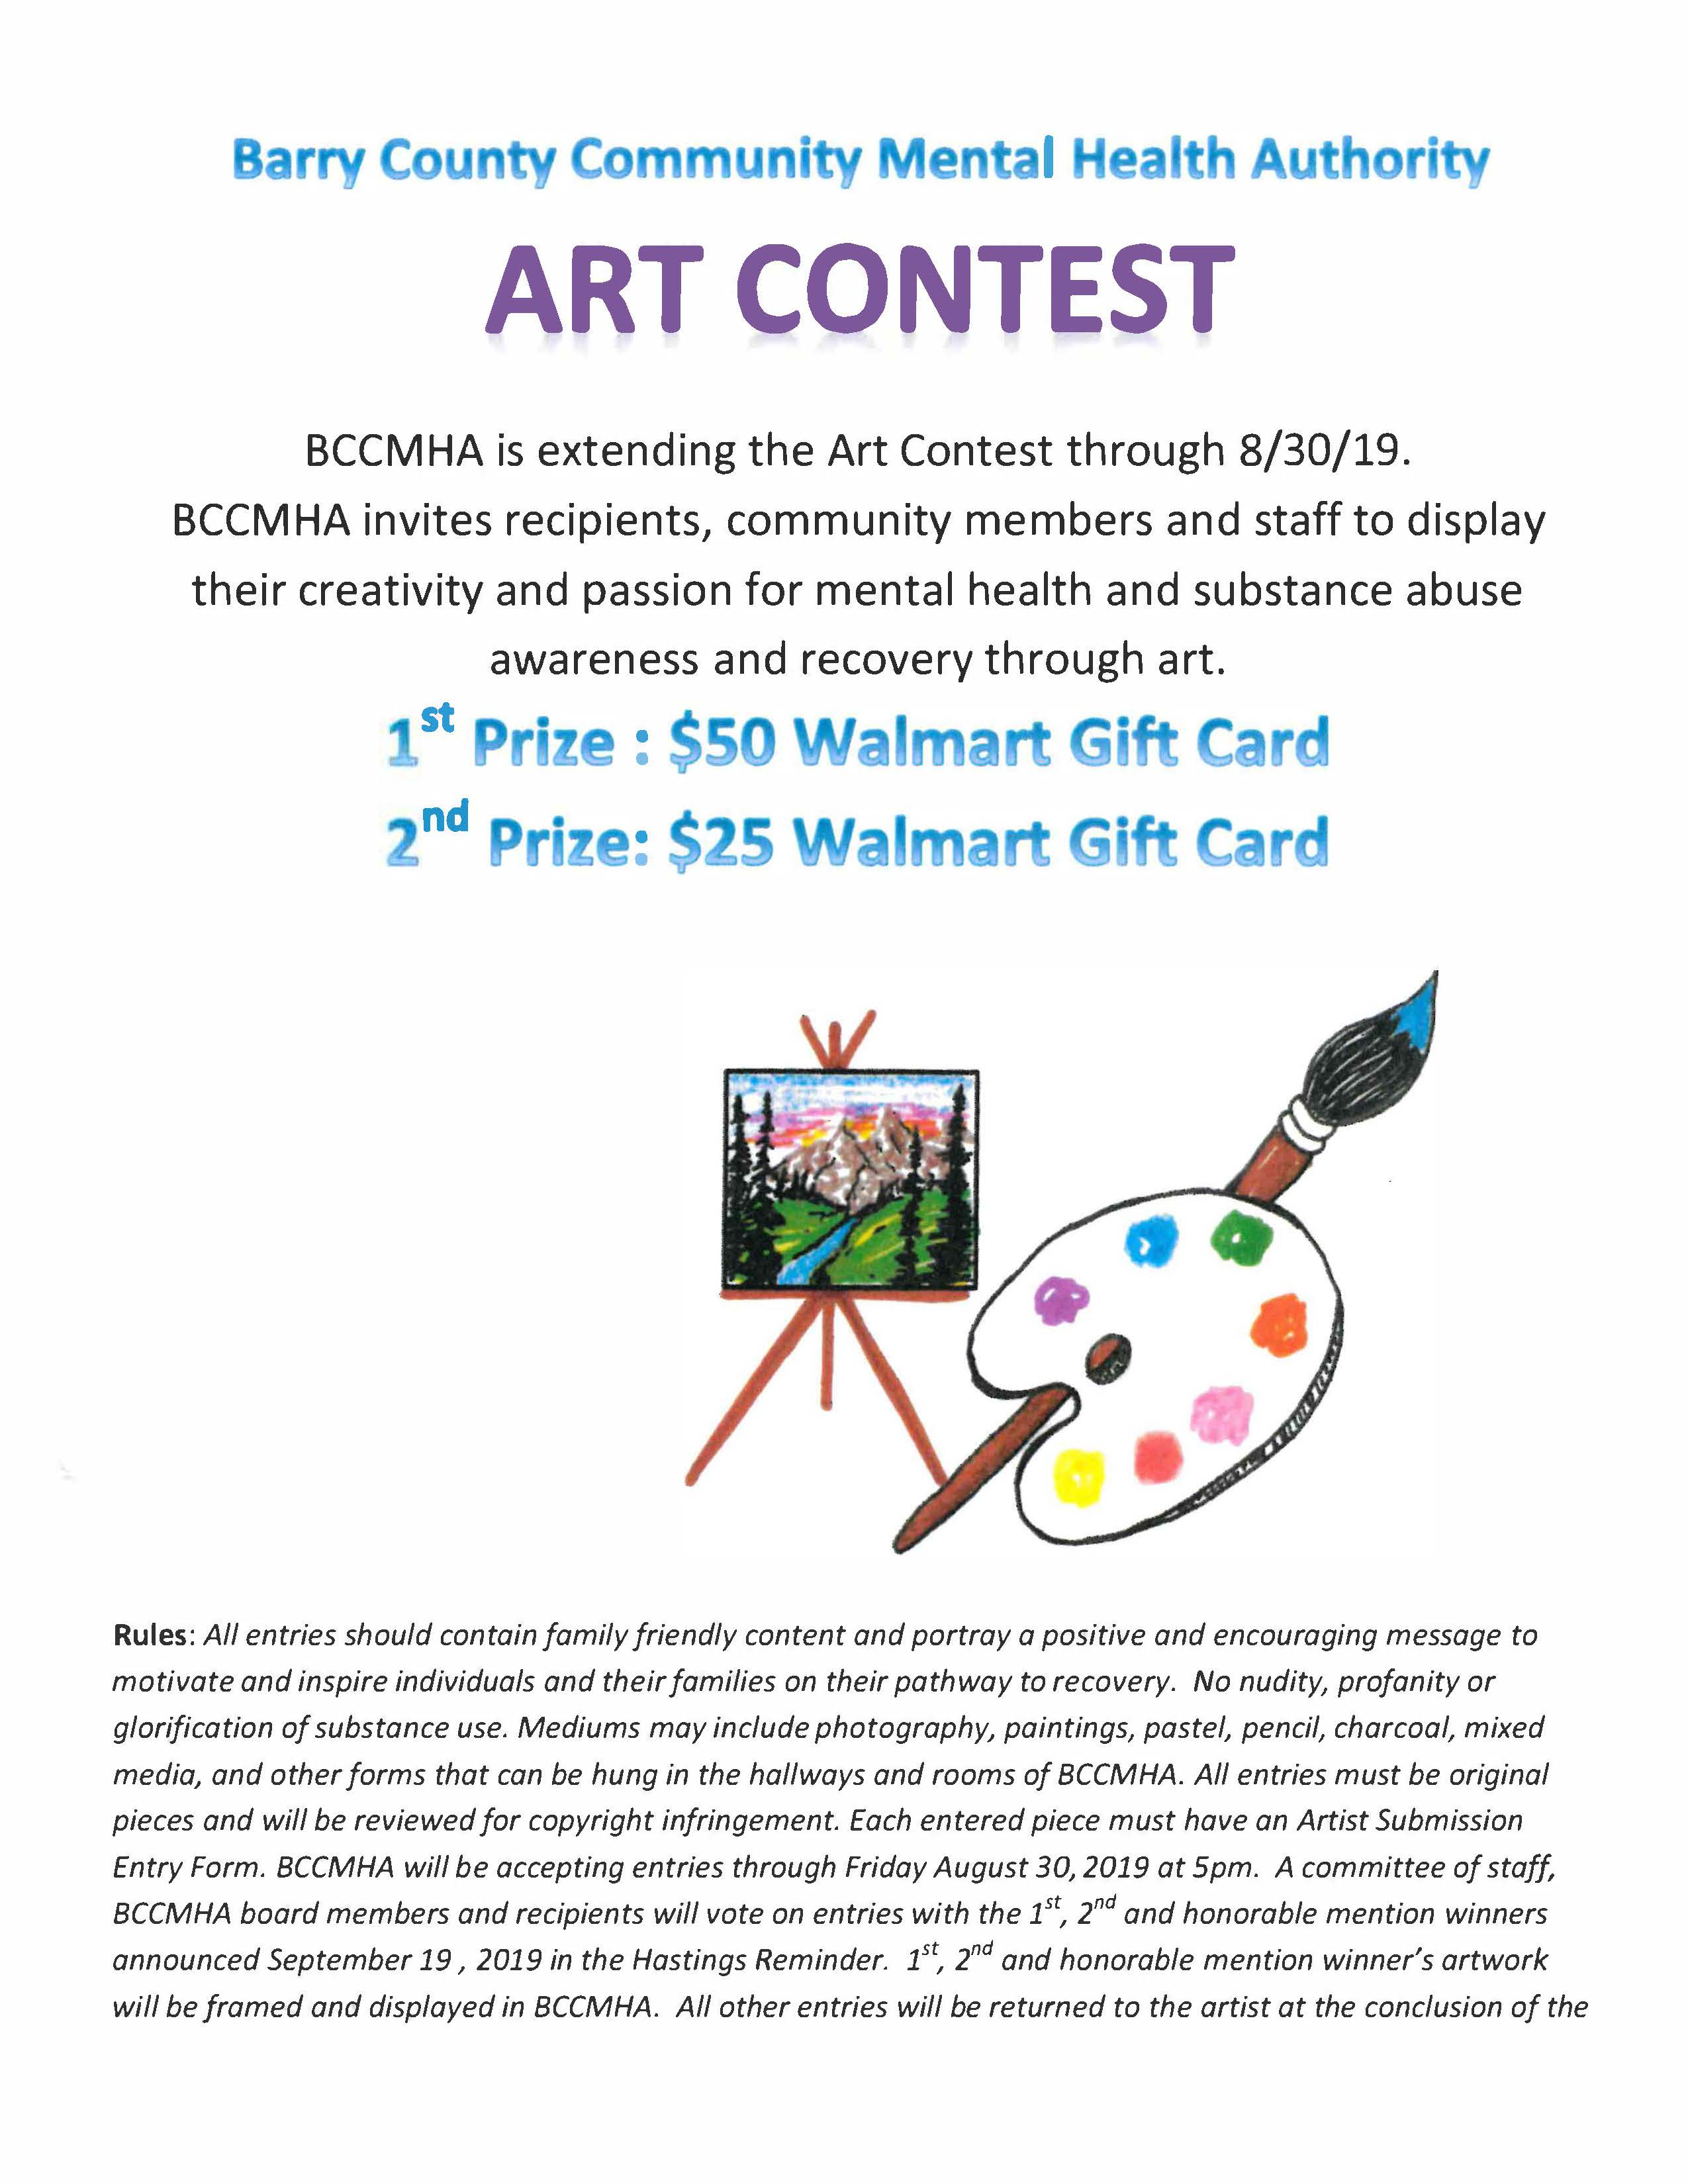 BCCMHA Artist Competition